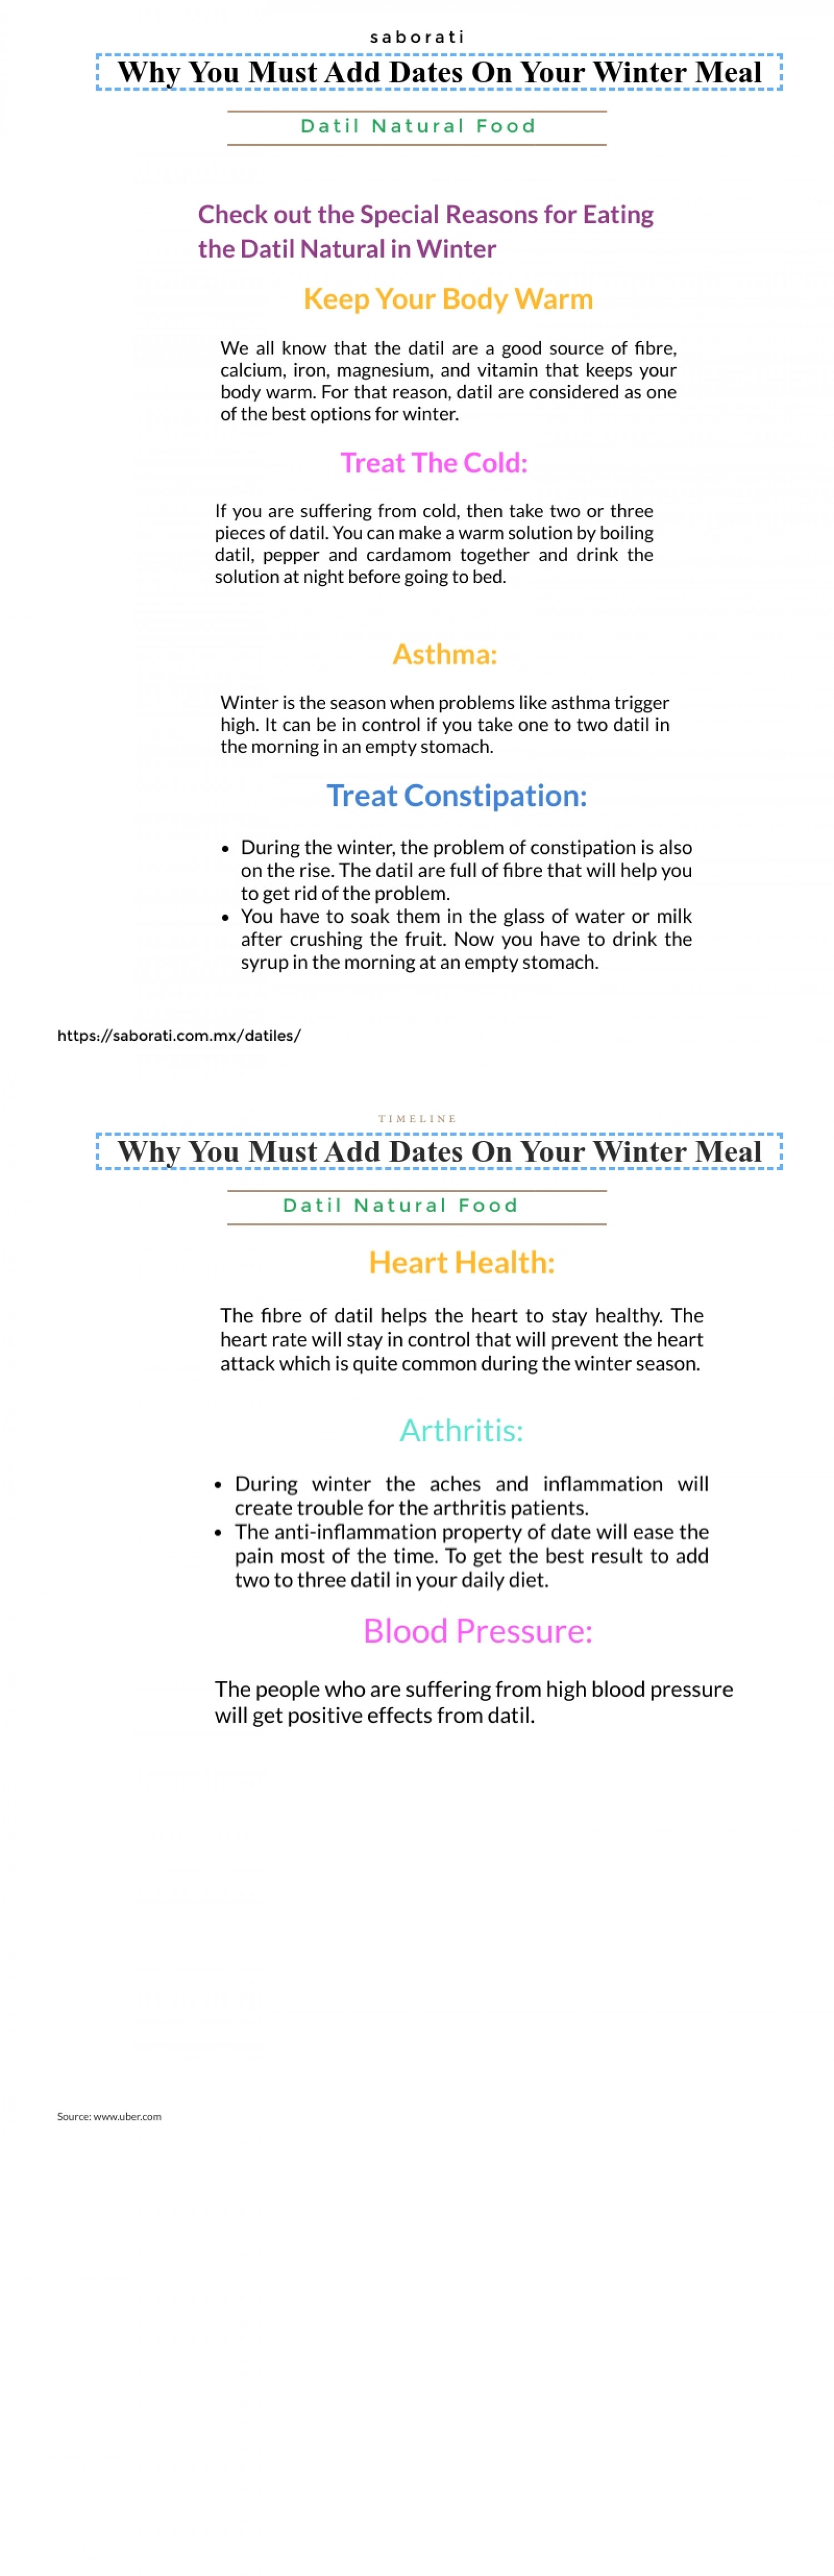 Why You Must Add Datil Natural On Your Winter Meal  Infographic